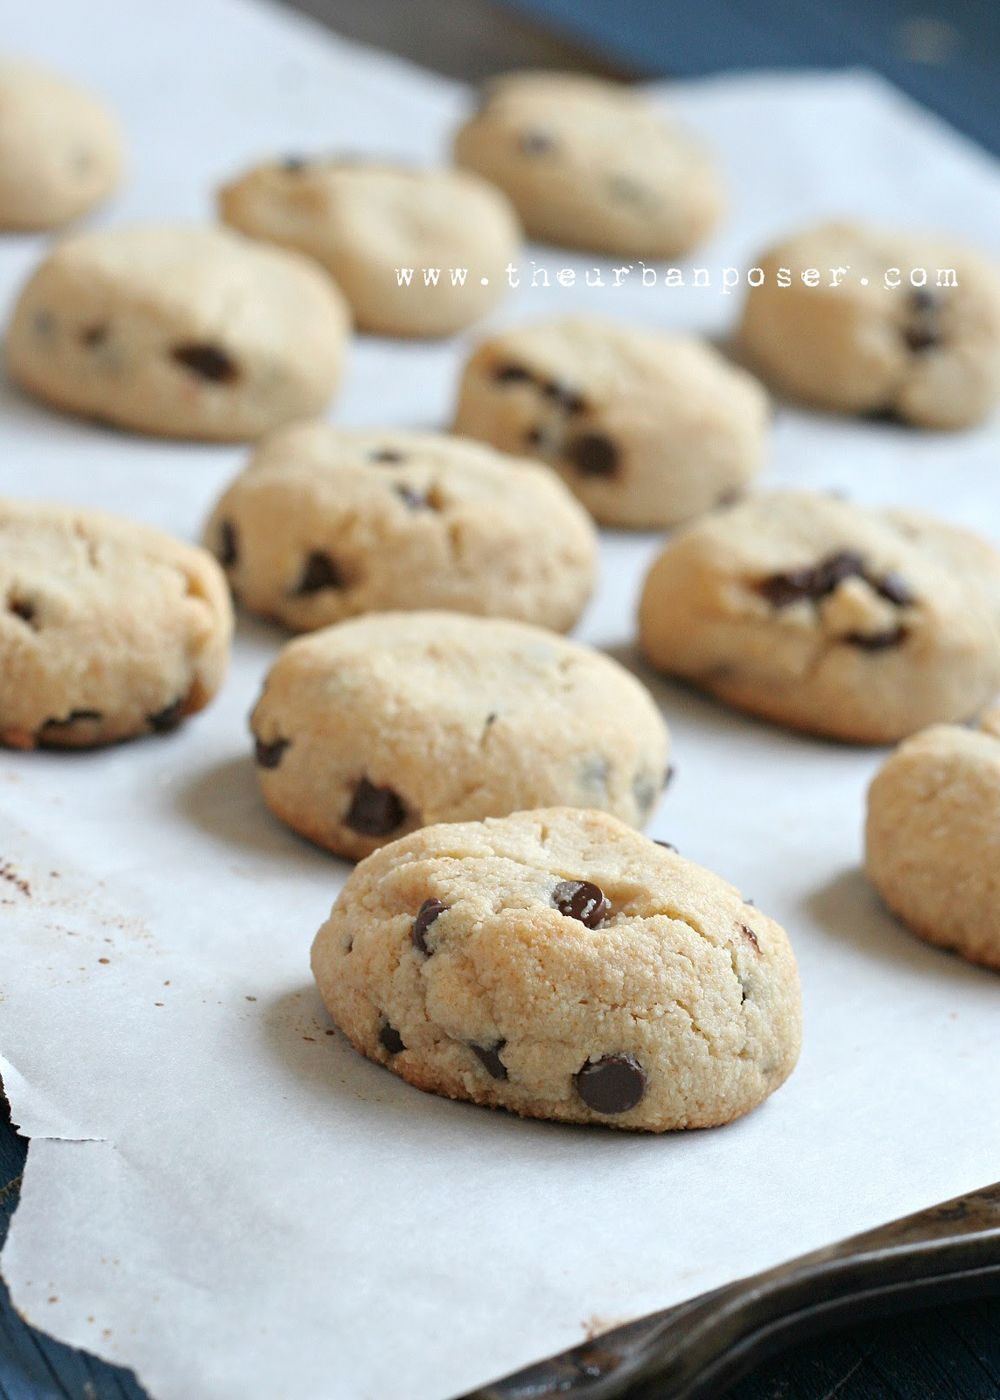 The Urban Poser: Perfect 'Grain Free' Chocolate Chip Cookies (dairy/egg free, refined sugar free, Paleo)